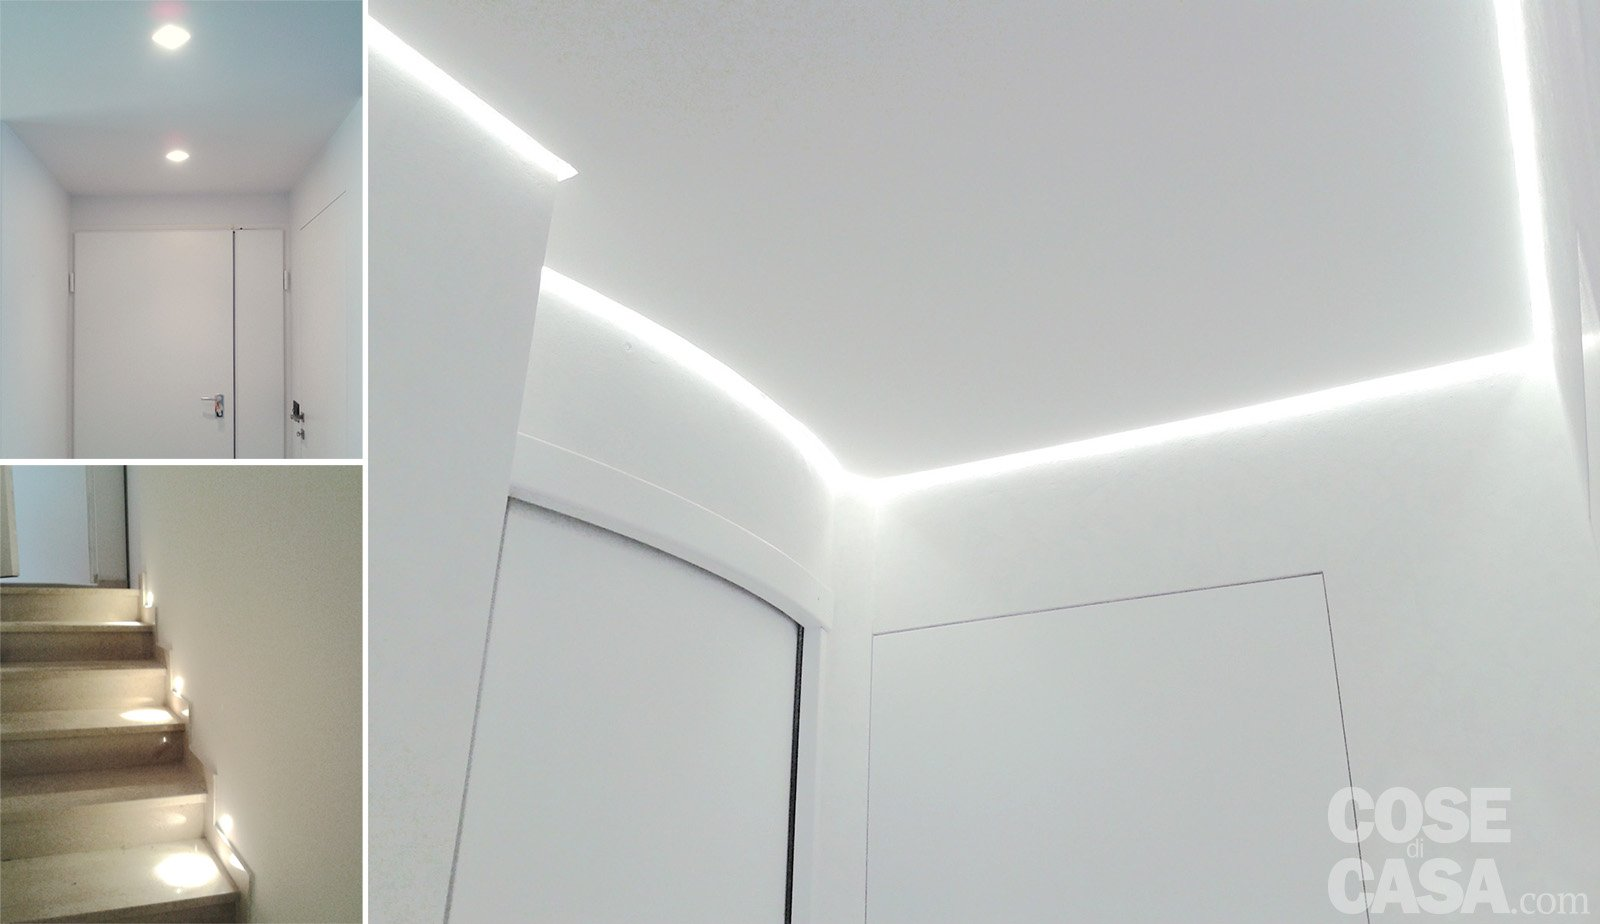 Abbassamento soffitto led